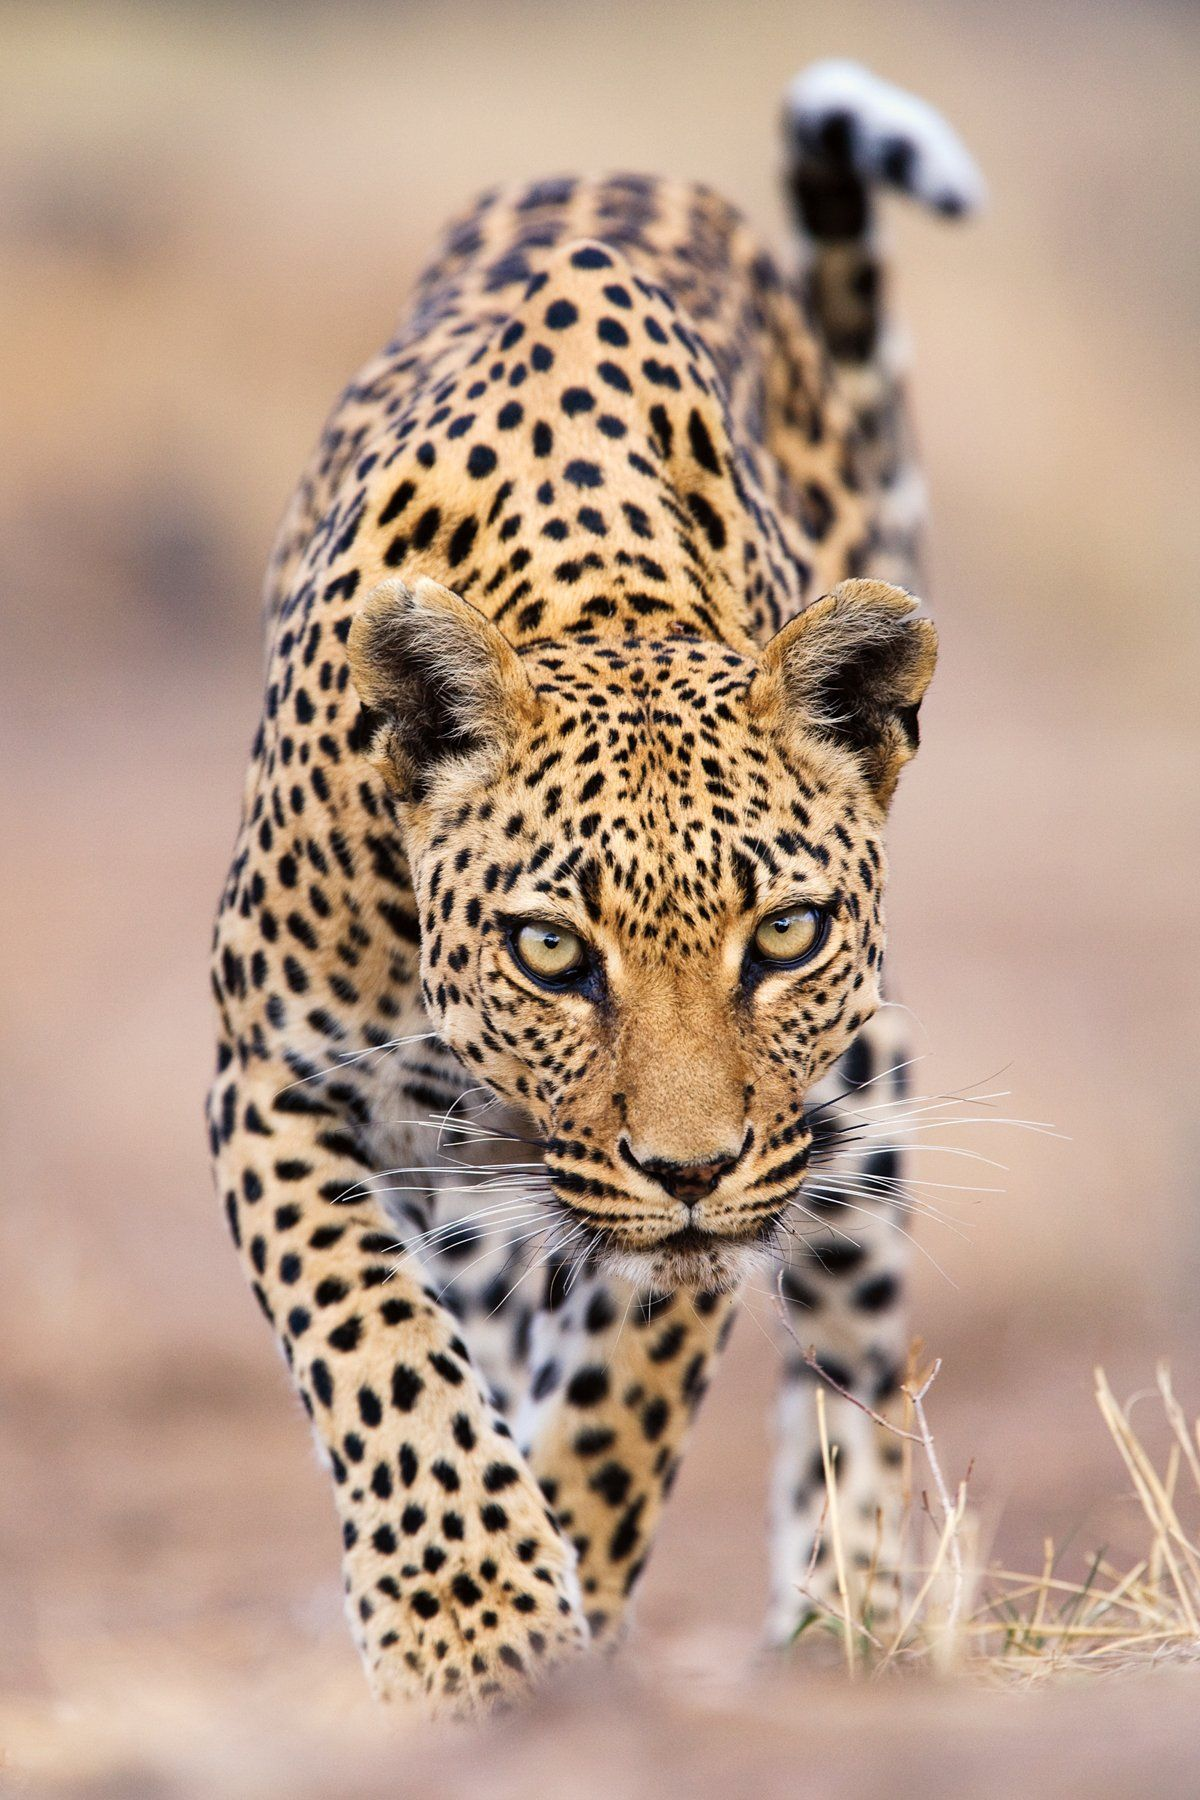 These Are Some Of The Best Wildlife Pictures Taken In The Last 20 Years Animals Animals Wild Animals Beautiful